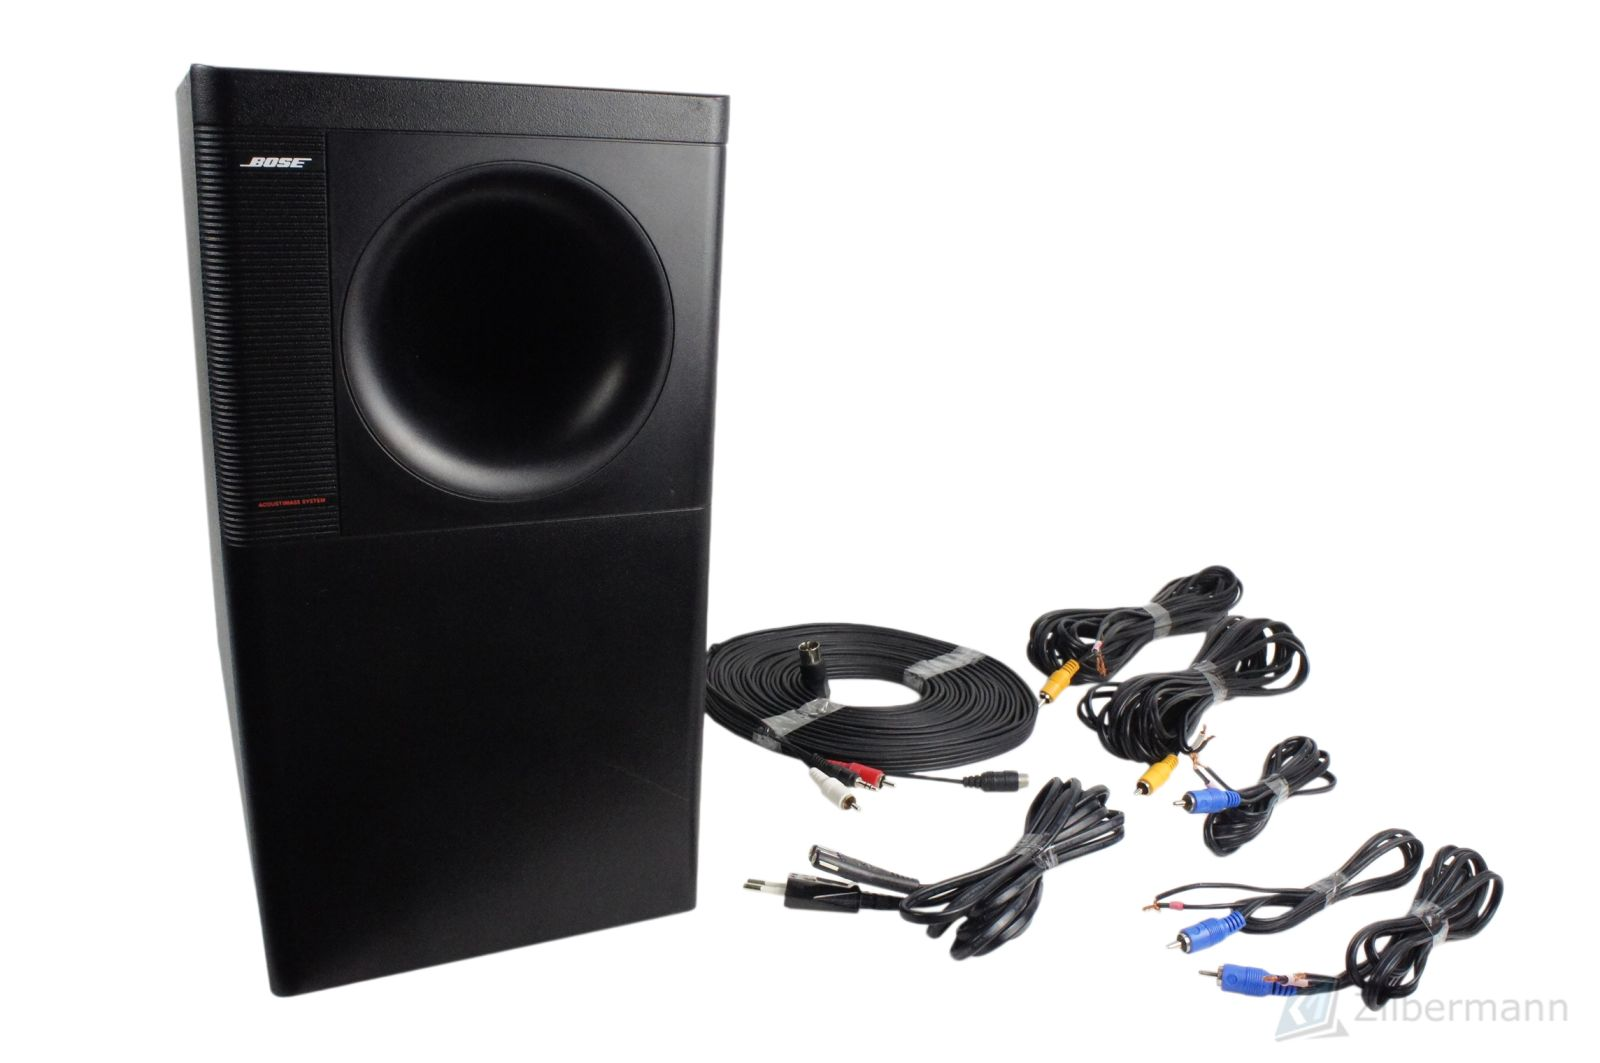 Bose_Powered_Acoustimass_8_Series_II_5.1_Subwoofer_Aktiv